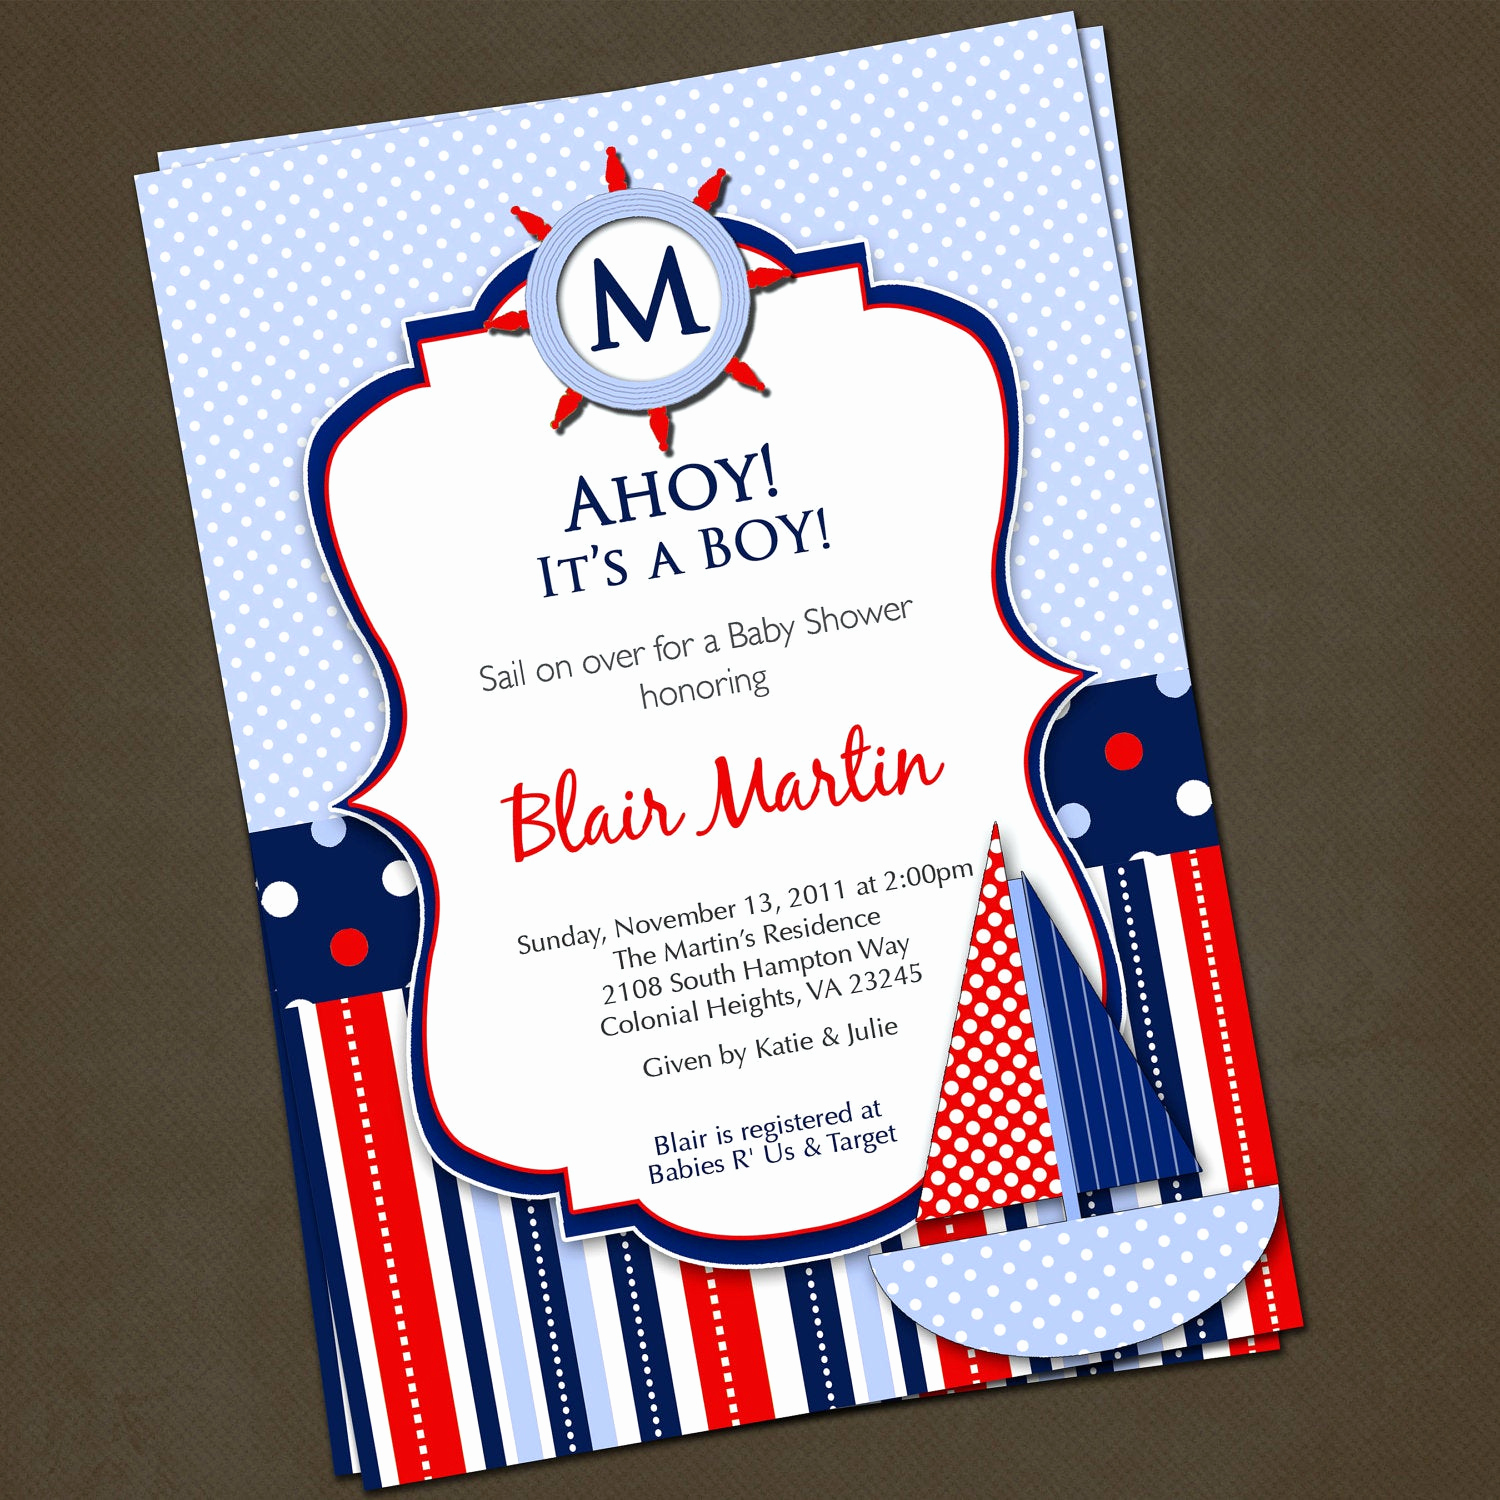 Nautical theme Baby Shower Invitation Awesome Nautical Sailboat Baby Shower Invitations by Pinkskyprintables